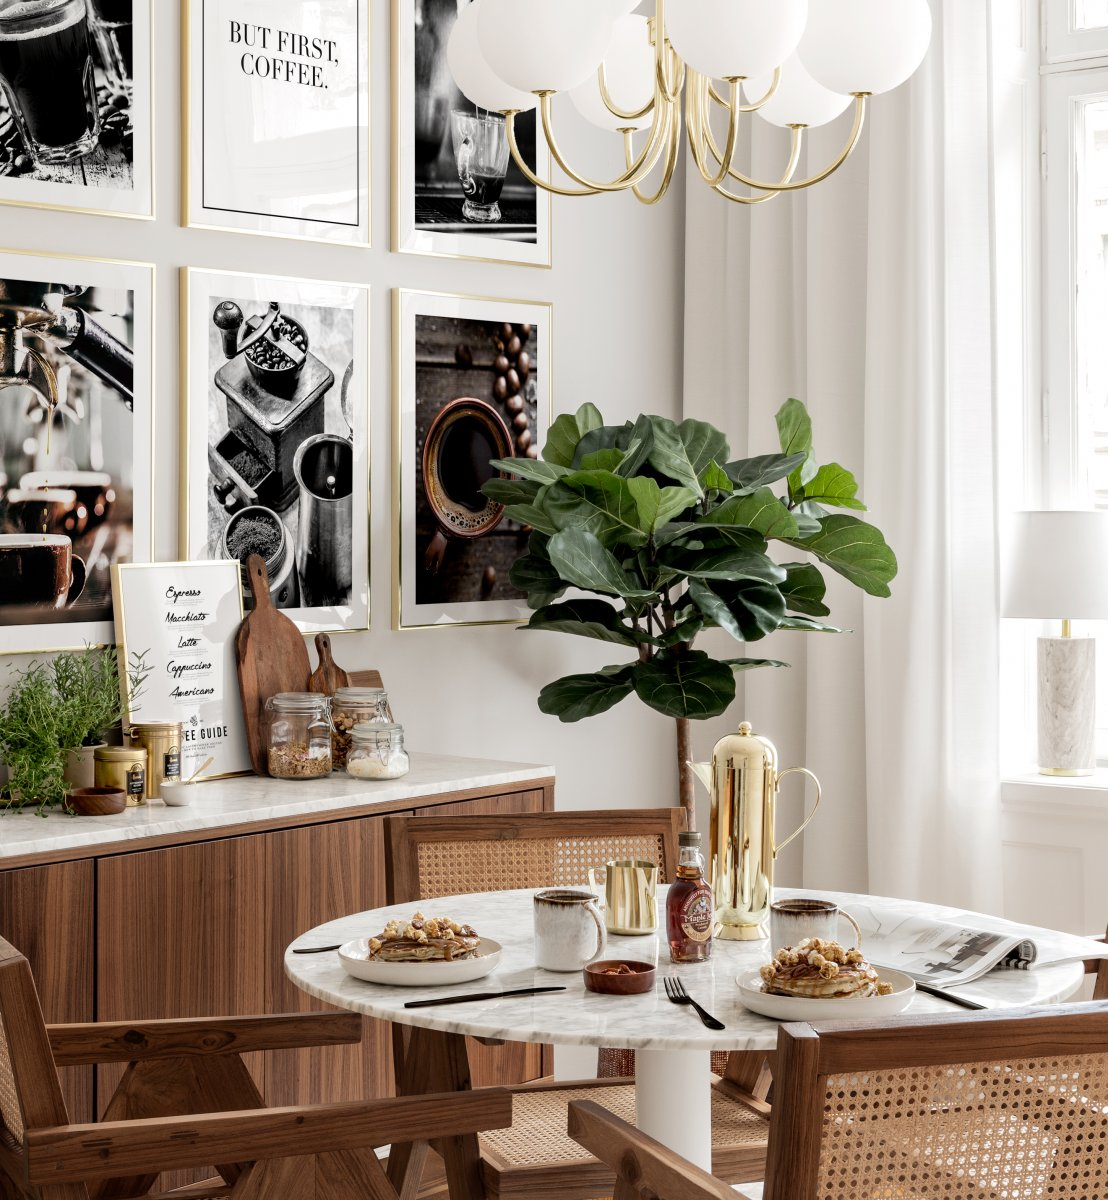 Dining Room Wall Art Coffee Posters, Dining Room Wall Picture Frames